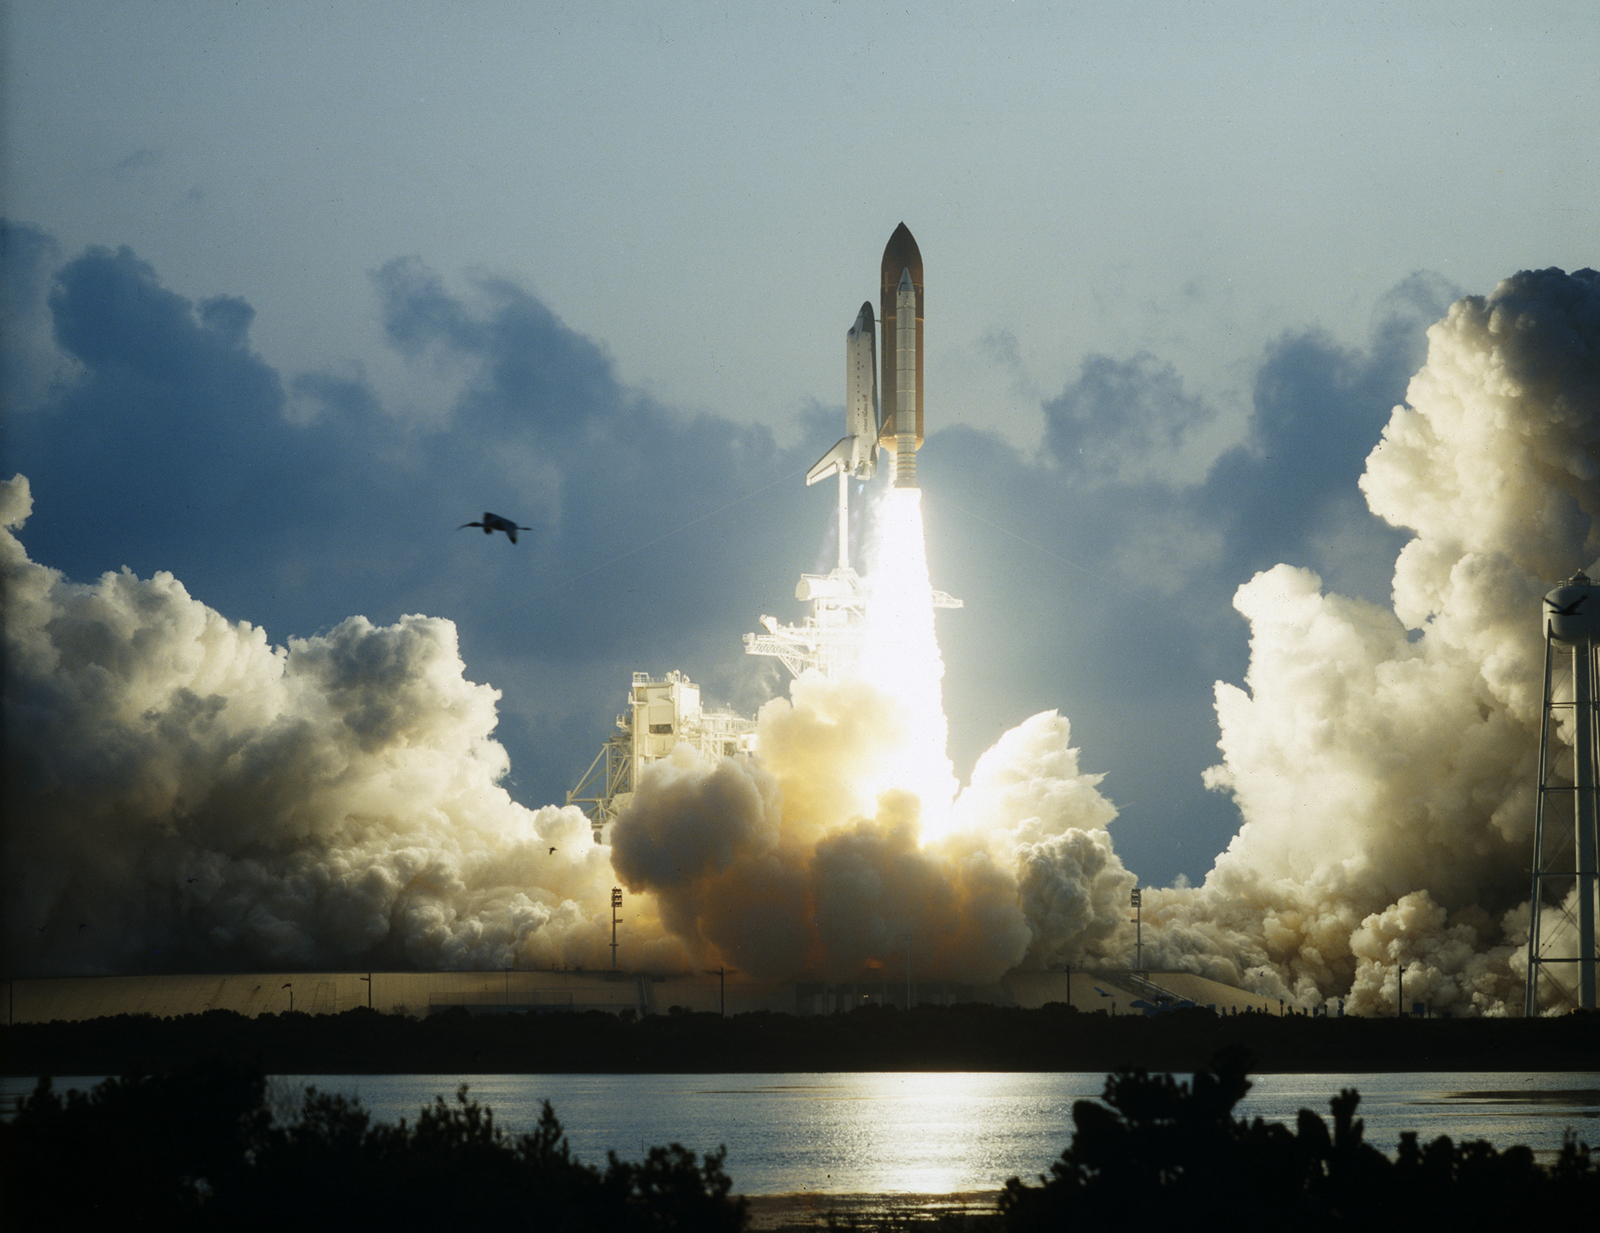 On This Day in Space! May 7, 1992: Space shuttle Endeavour launches on maiden voyage